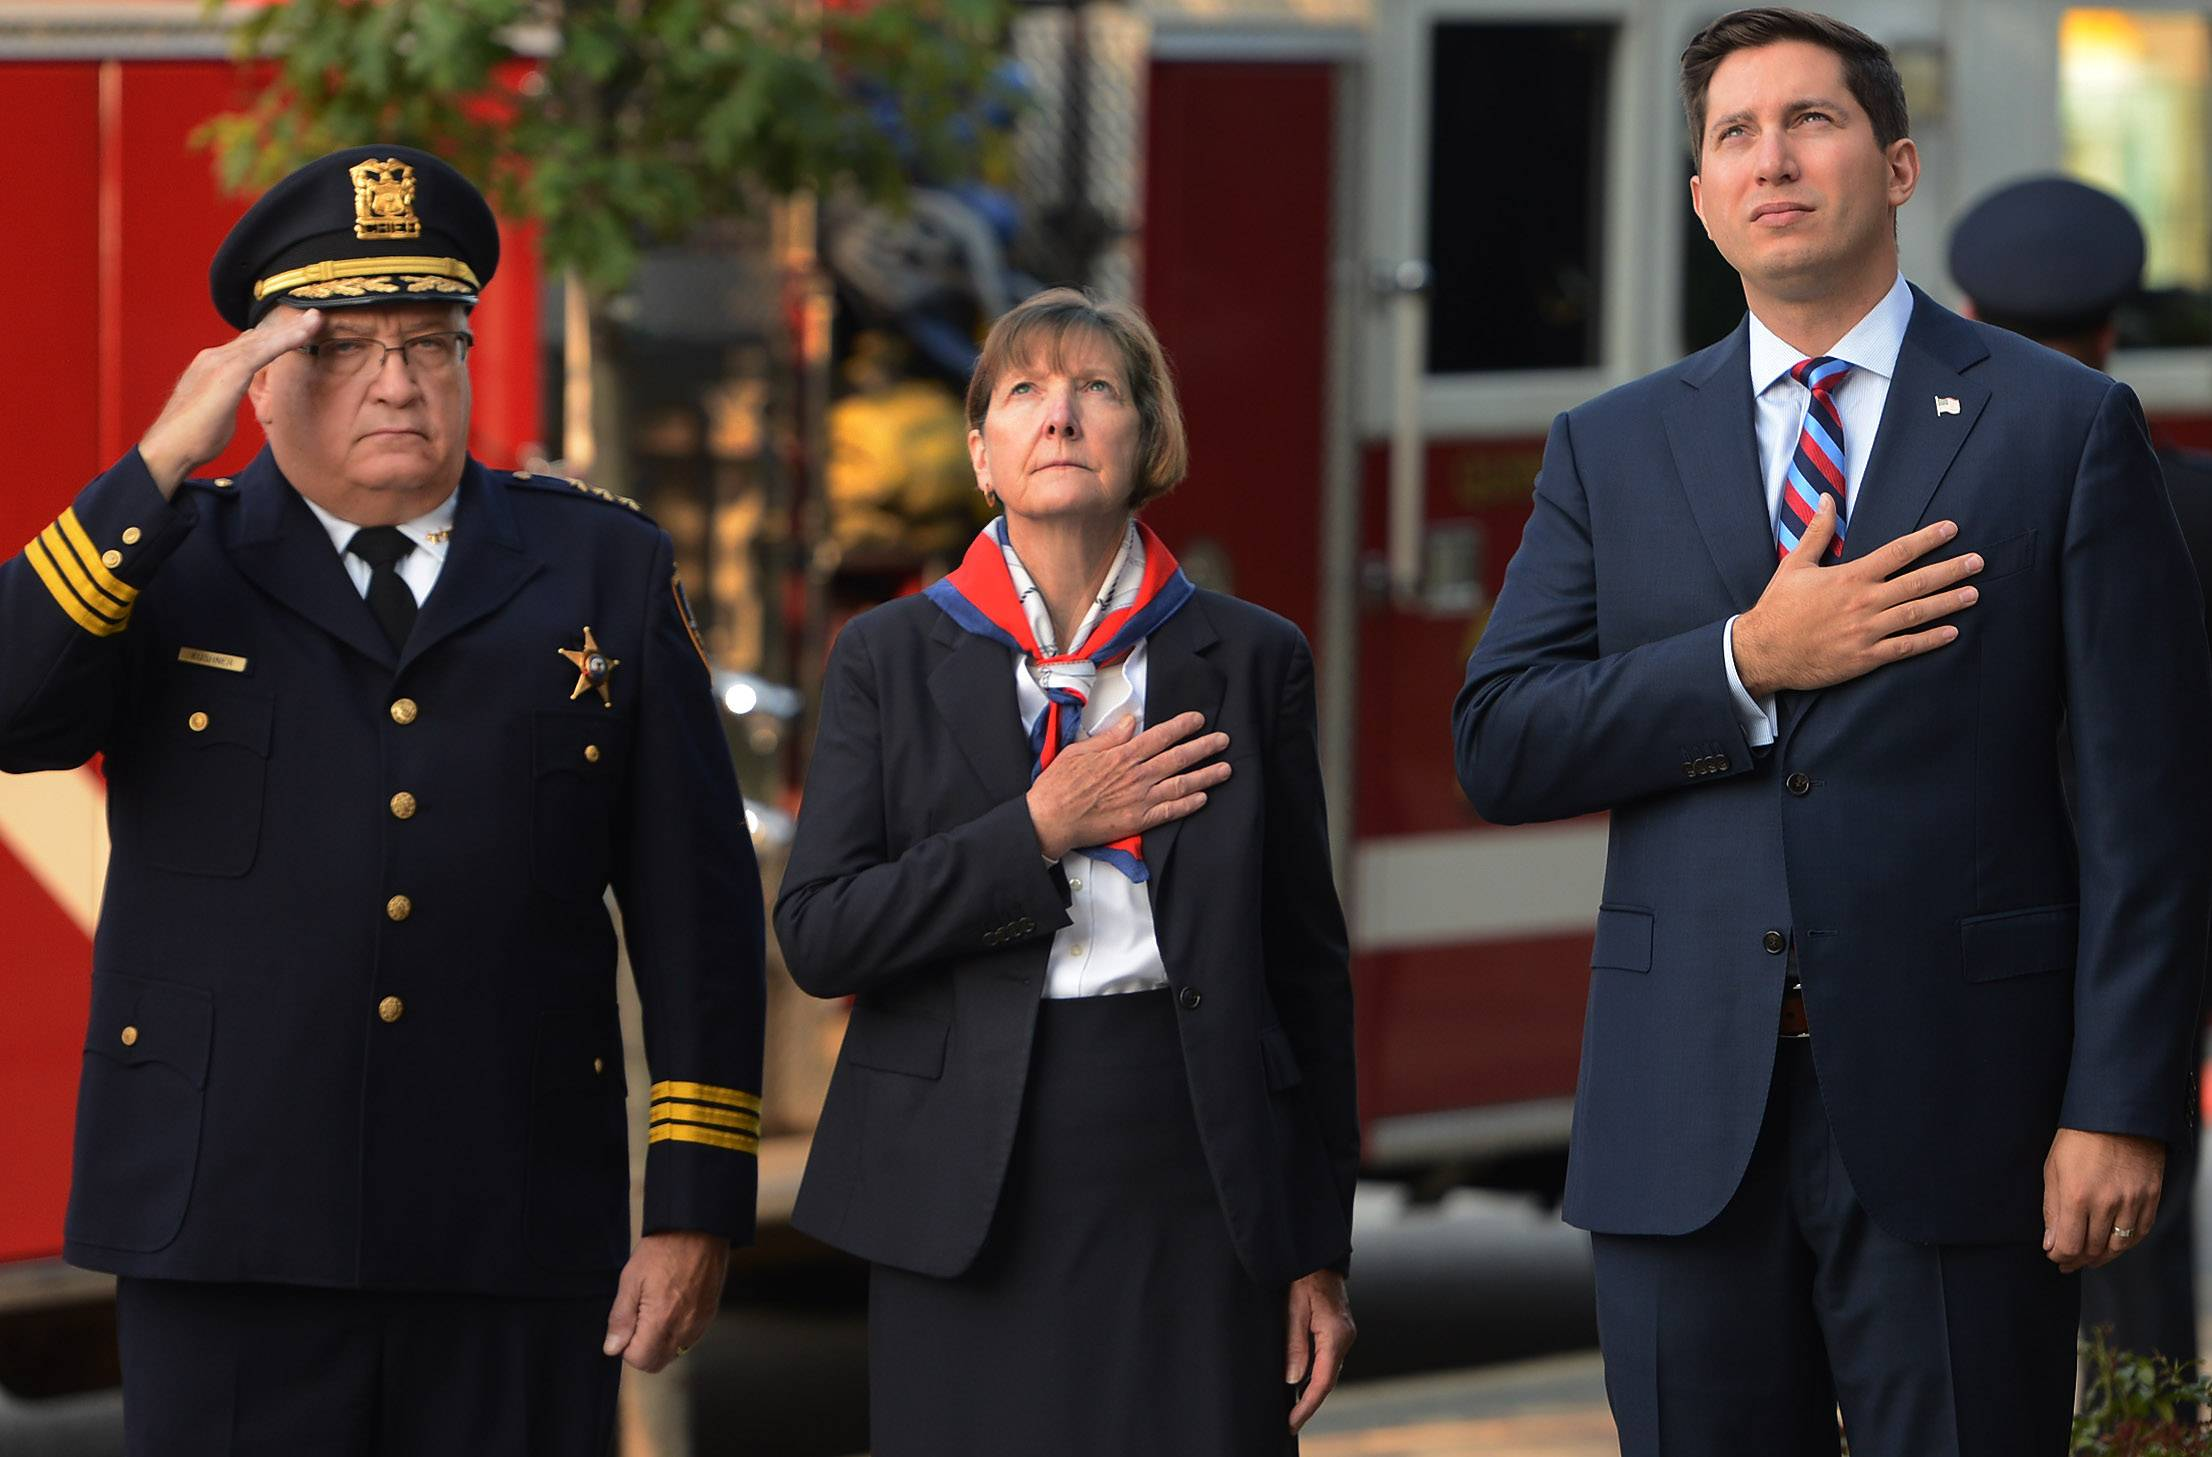 Des Plaines ceremony honors Sept. 11 victims